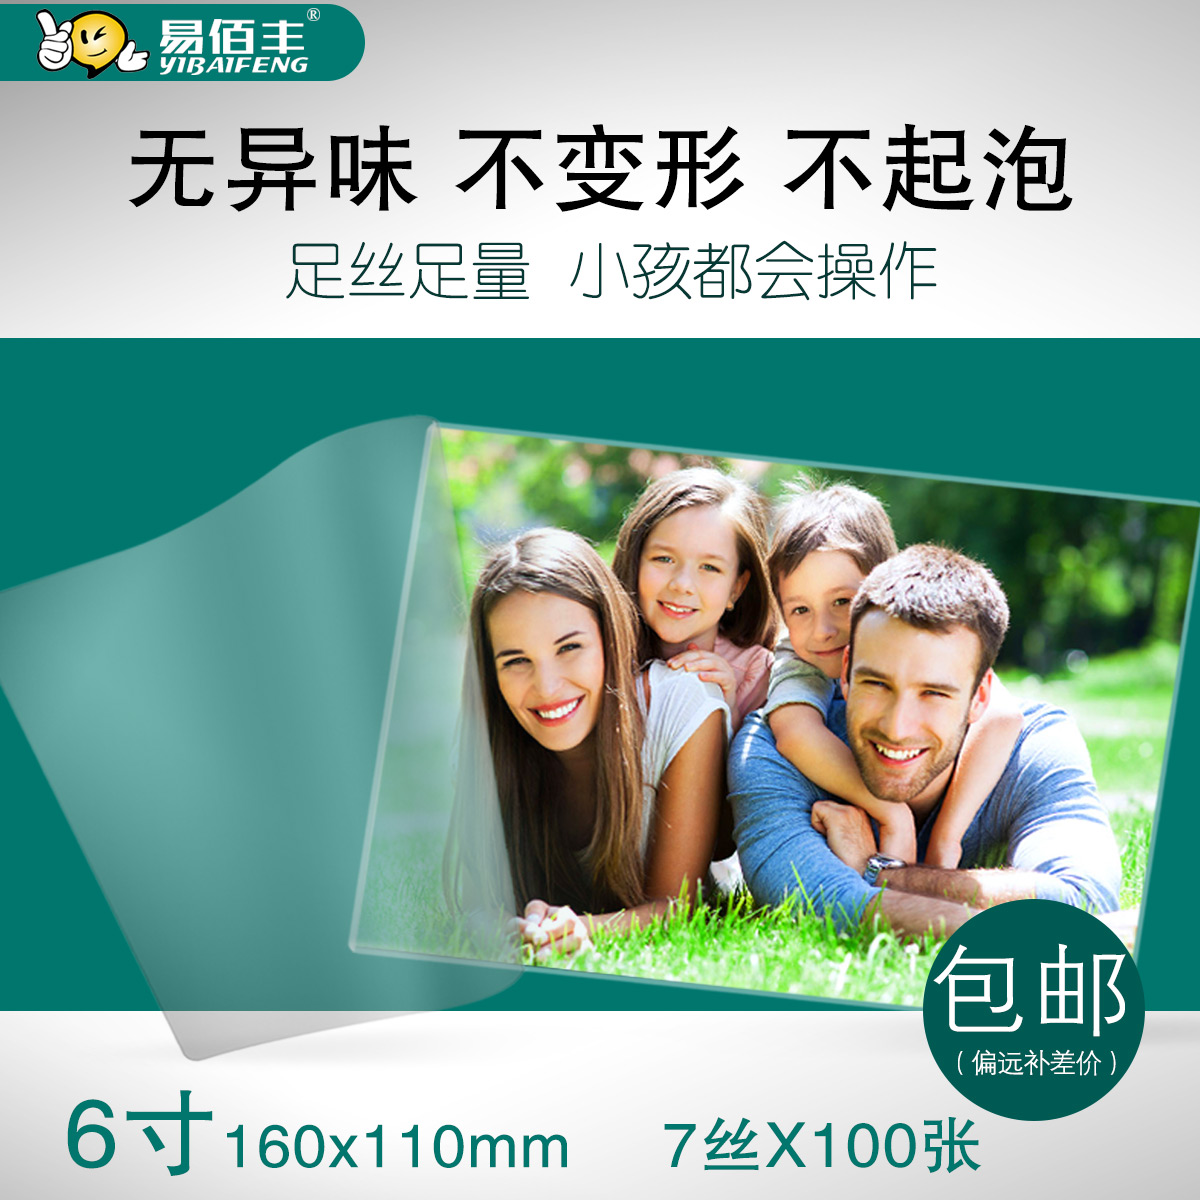 Bai yi feng 6 3-inch plastic film 4r/a6 plastic film over 100 sheets/bag 7c/wire photo plastic Film over plastic paper menu